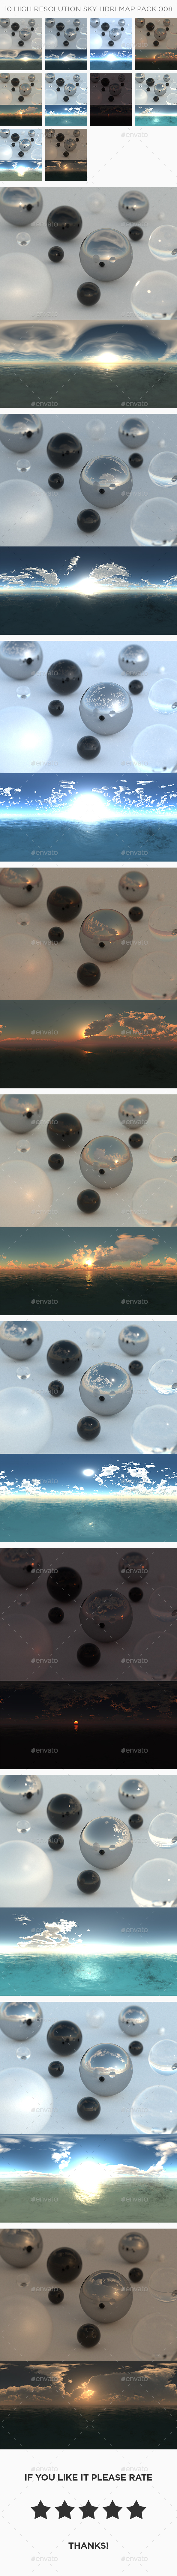 10 High Resolution Sky HDRi Maps Pack 008 - 3DOcean Item for Sale